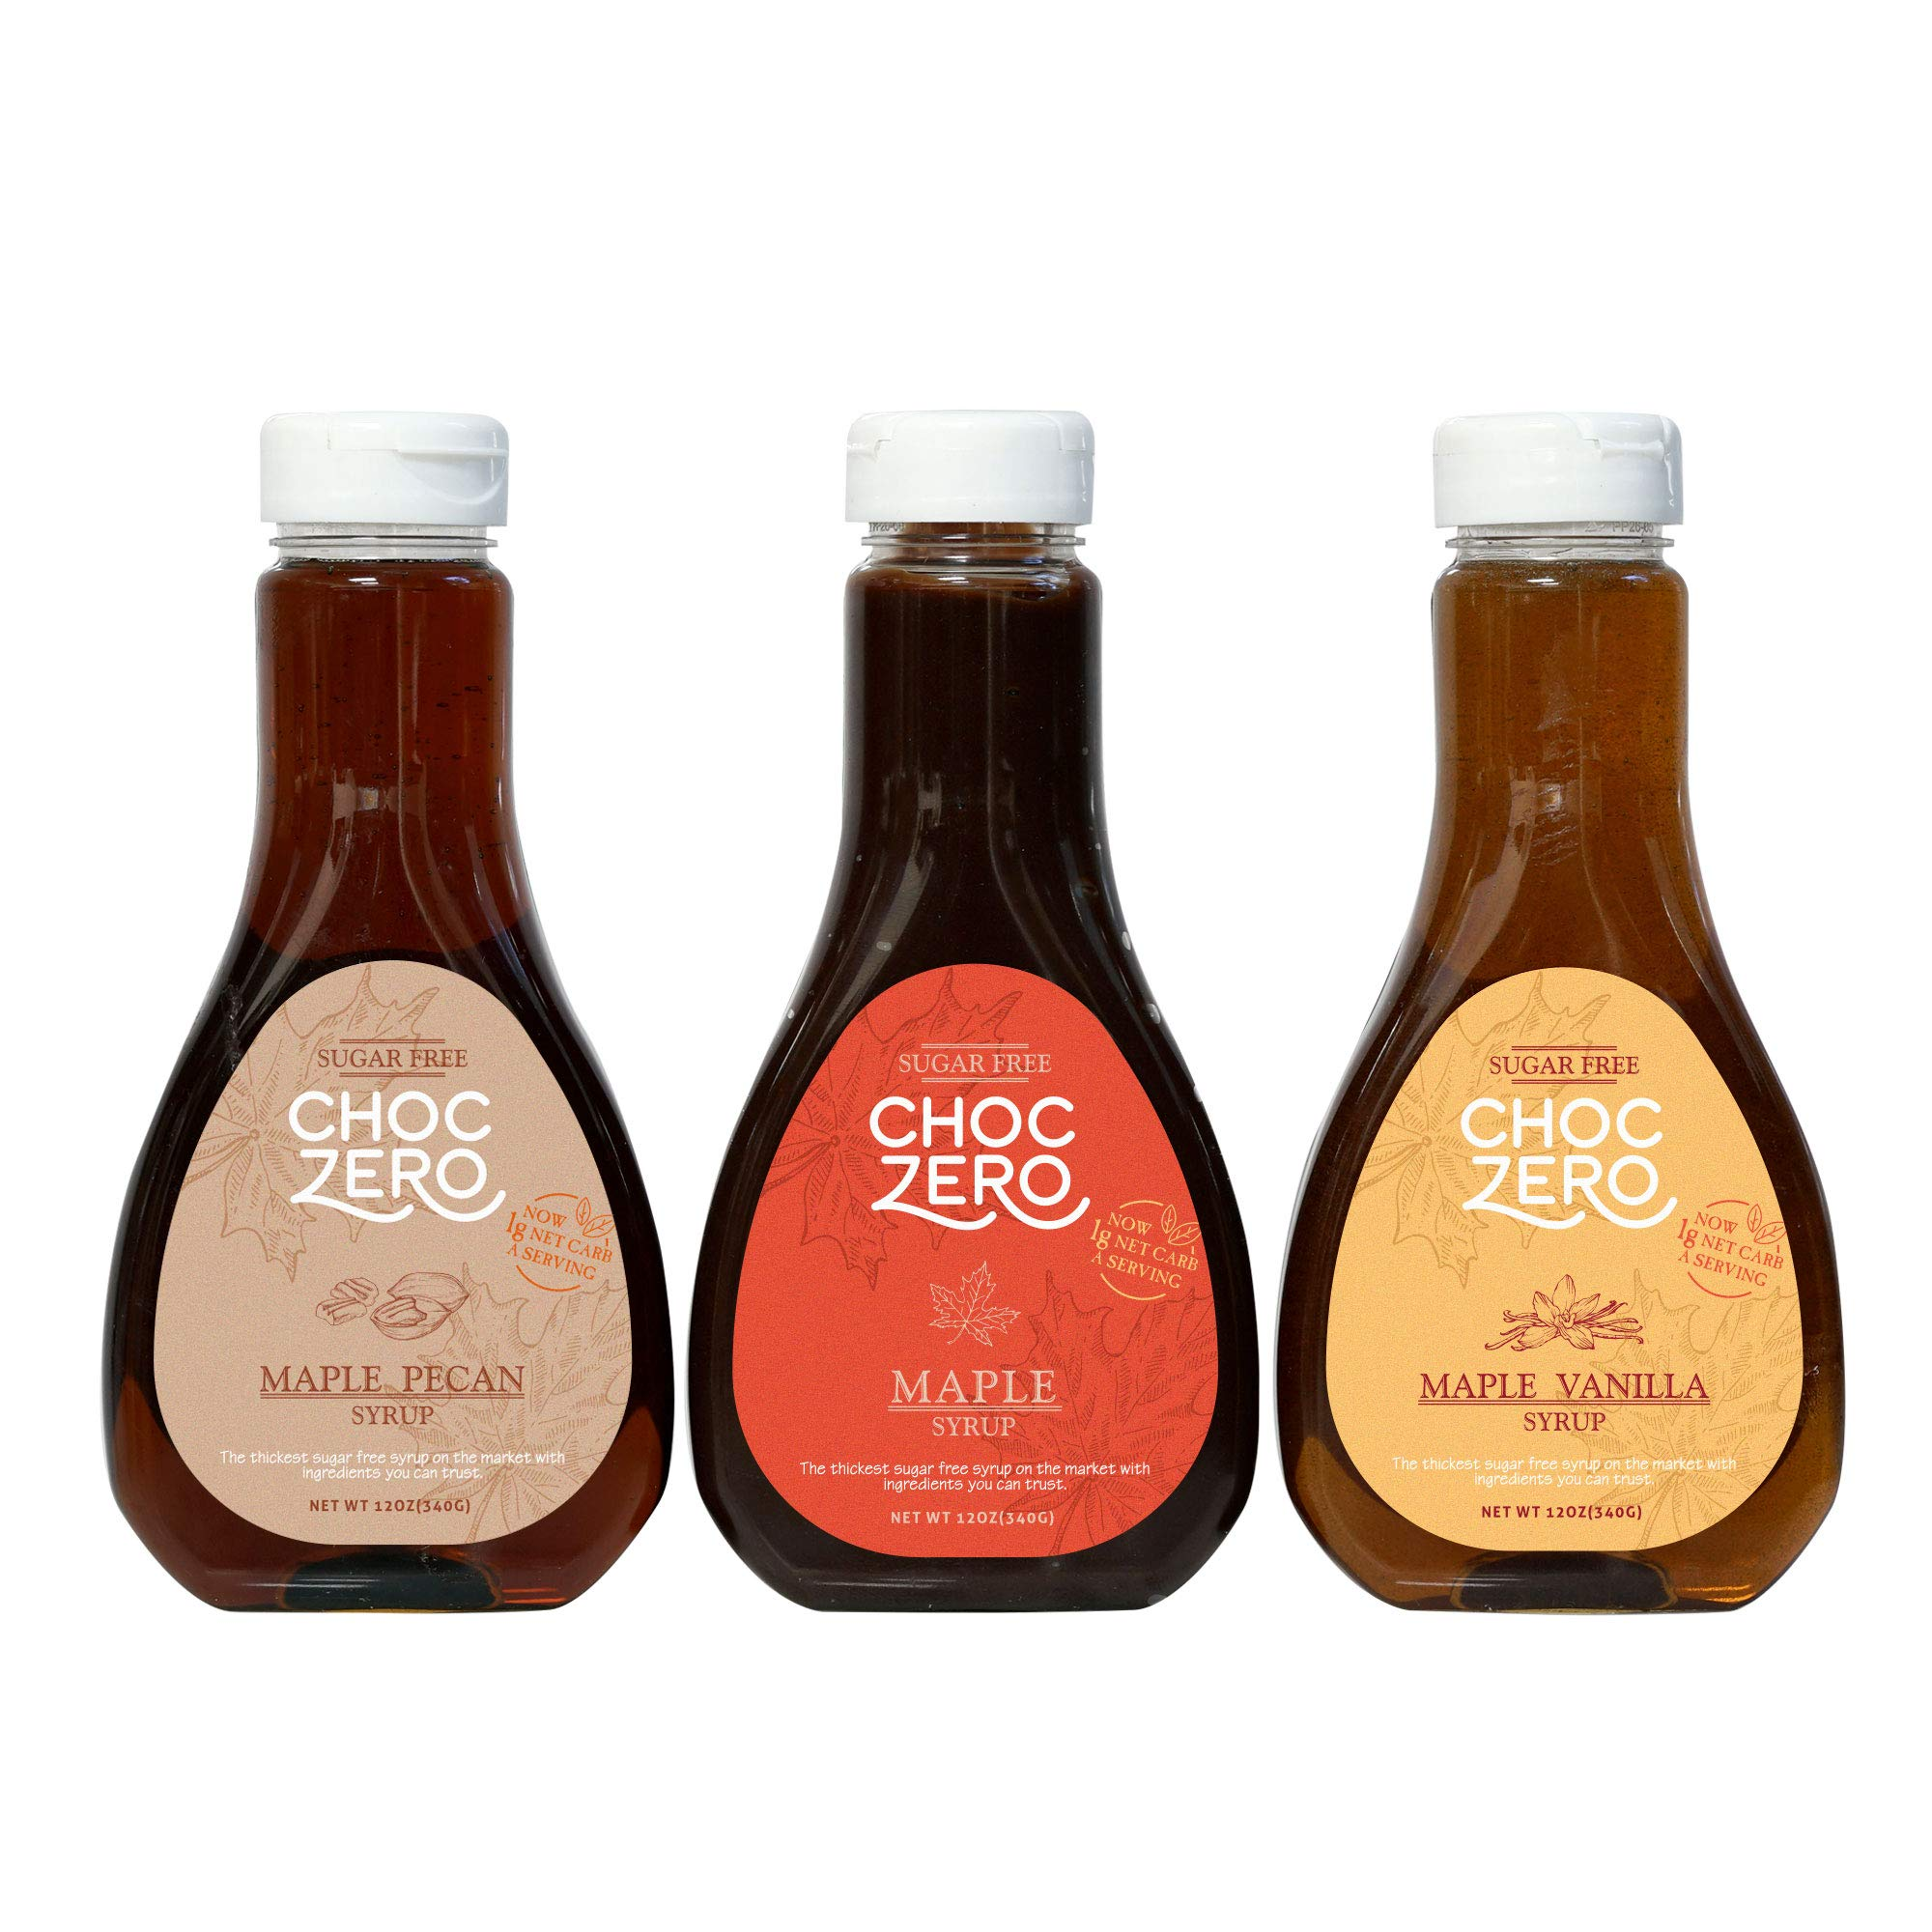 Honest Syrup, Maple Syrup Collection. Sugar free, Low Carb, No preservatives. Thick and Rich. Sugar Alcohol free, Gluten Free. Pancake and Waffle topping. 3 Bottles(3X12oz) by ChocZero